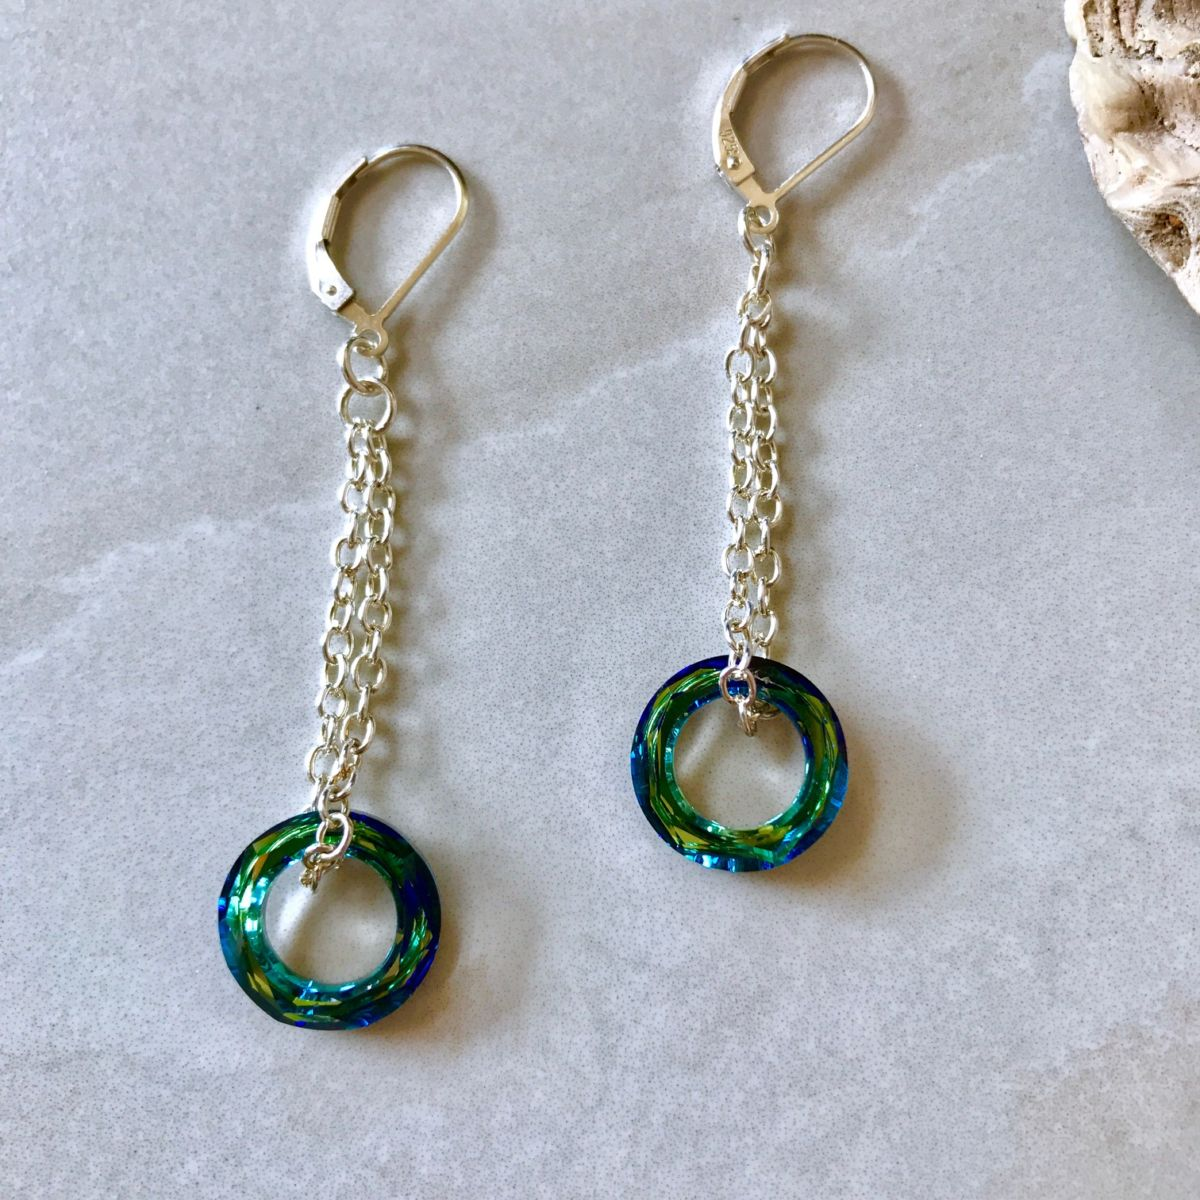 Swarovski Crystal Dangle Silver Earrings. Rated 5.00 out of 5 based on 2 customer ratings